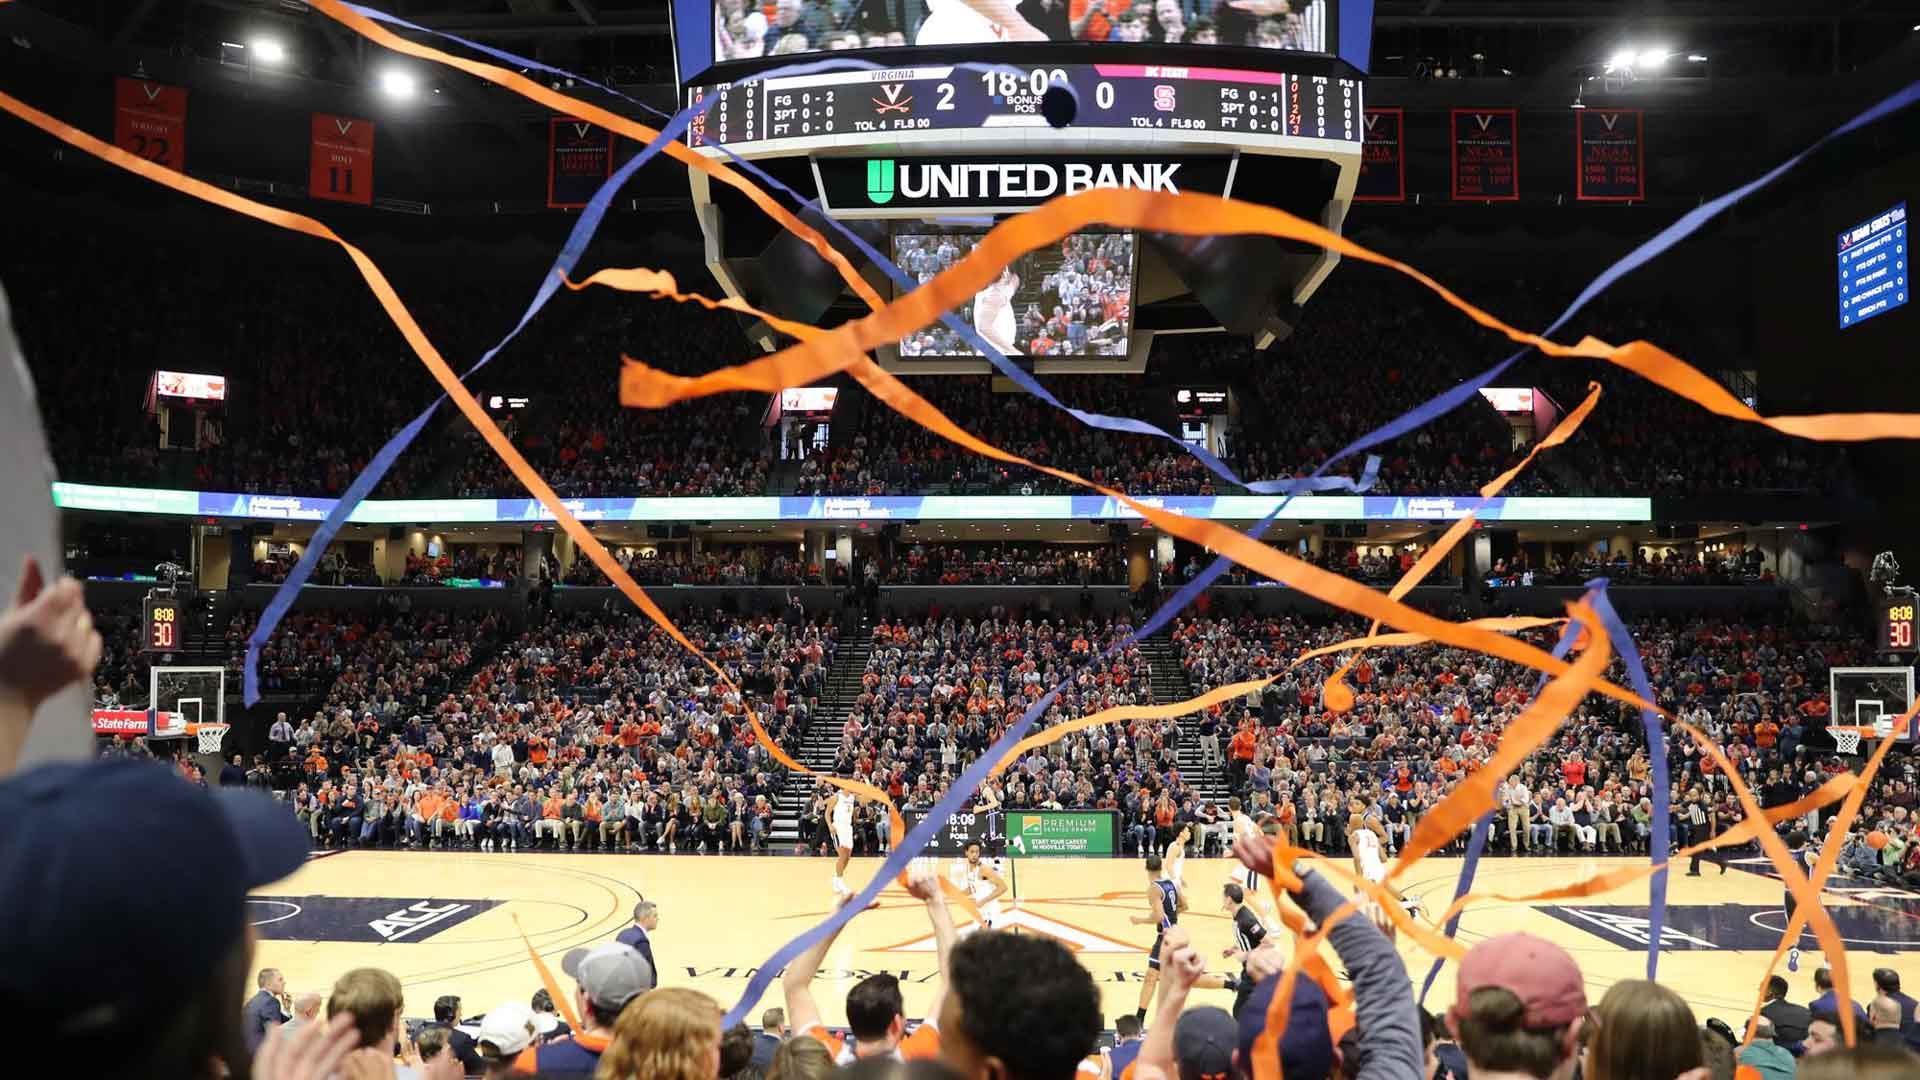 Get Your Uva Zoom Backgrounds Here Uva Today